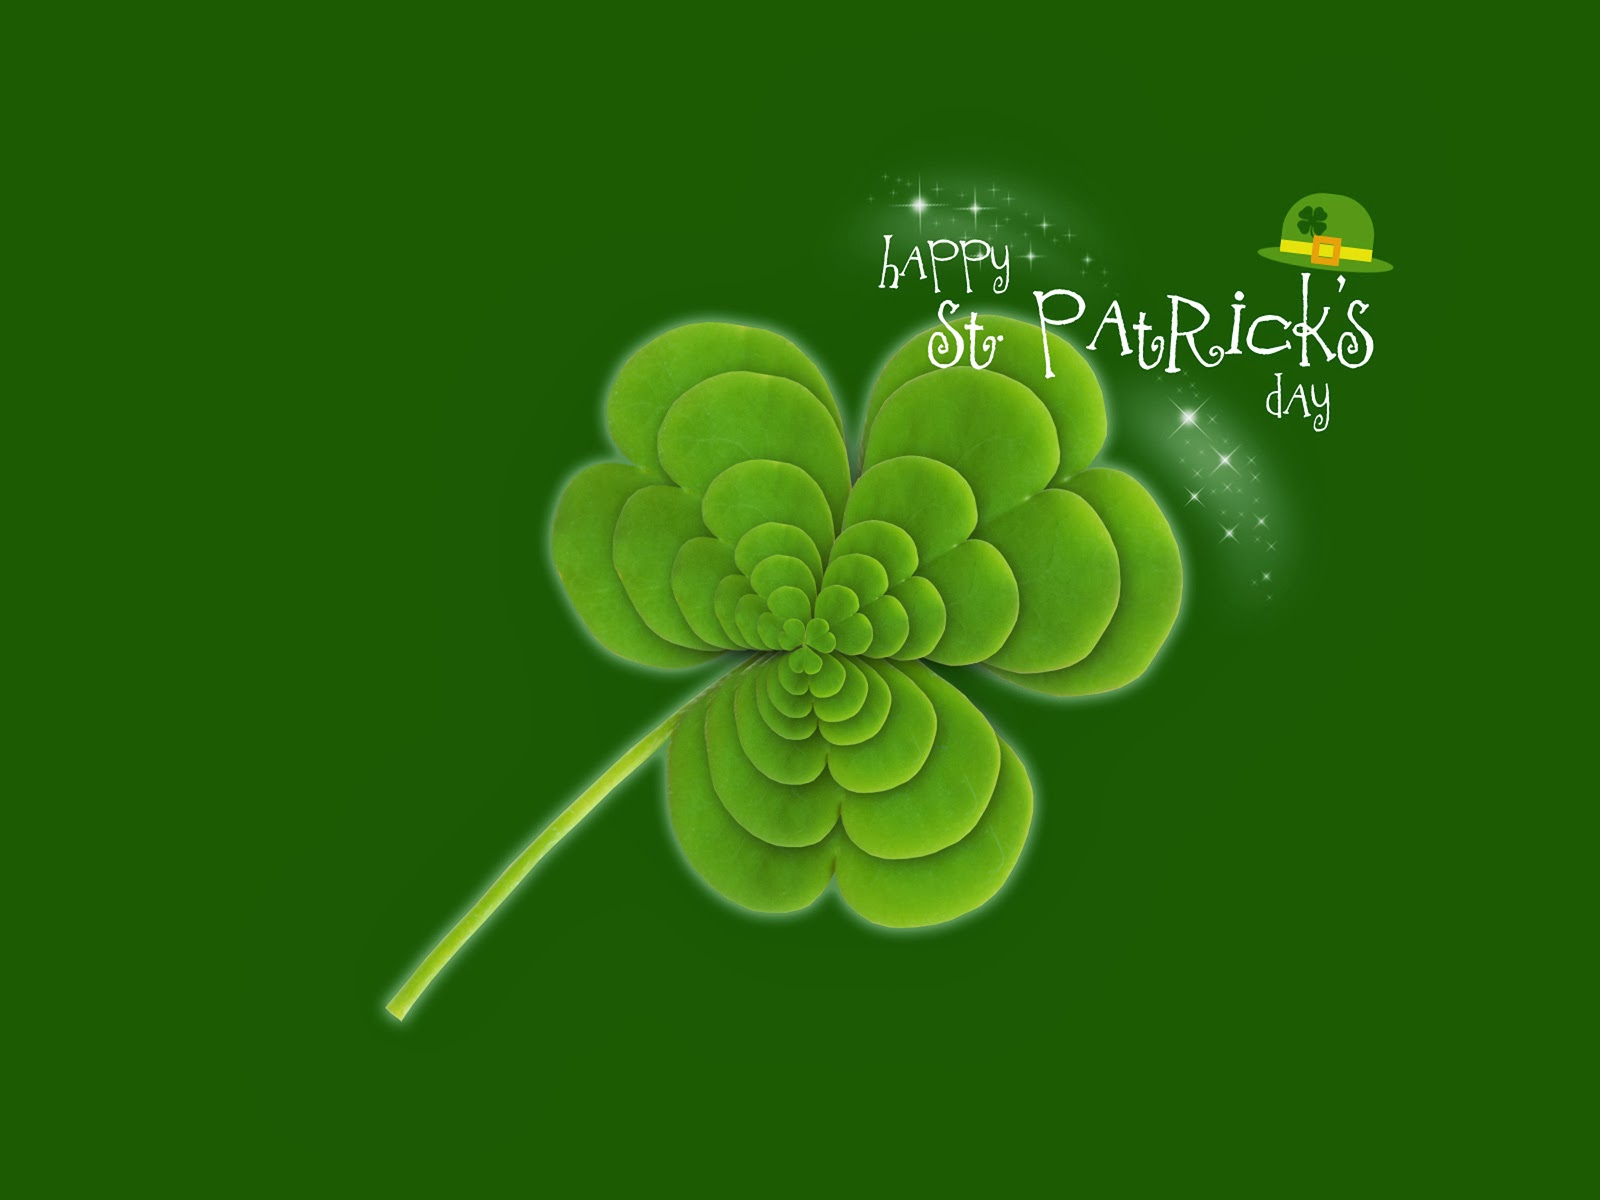 Happy Saint Patrick's Day, part 3